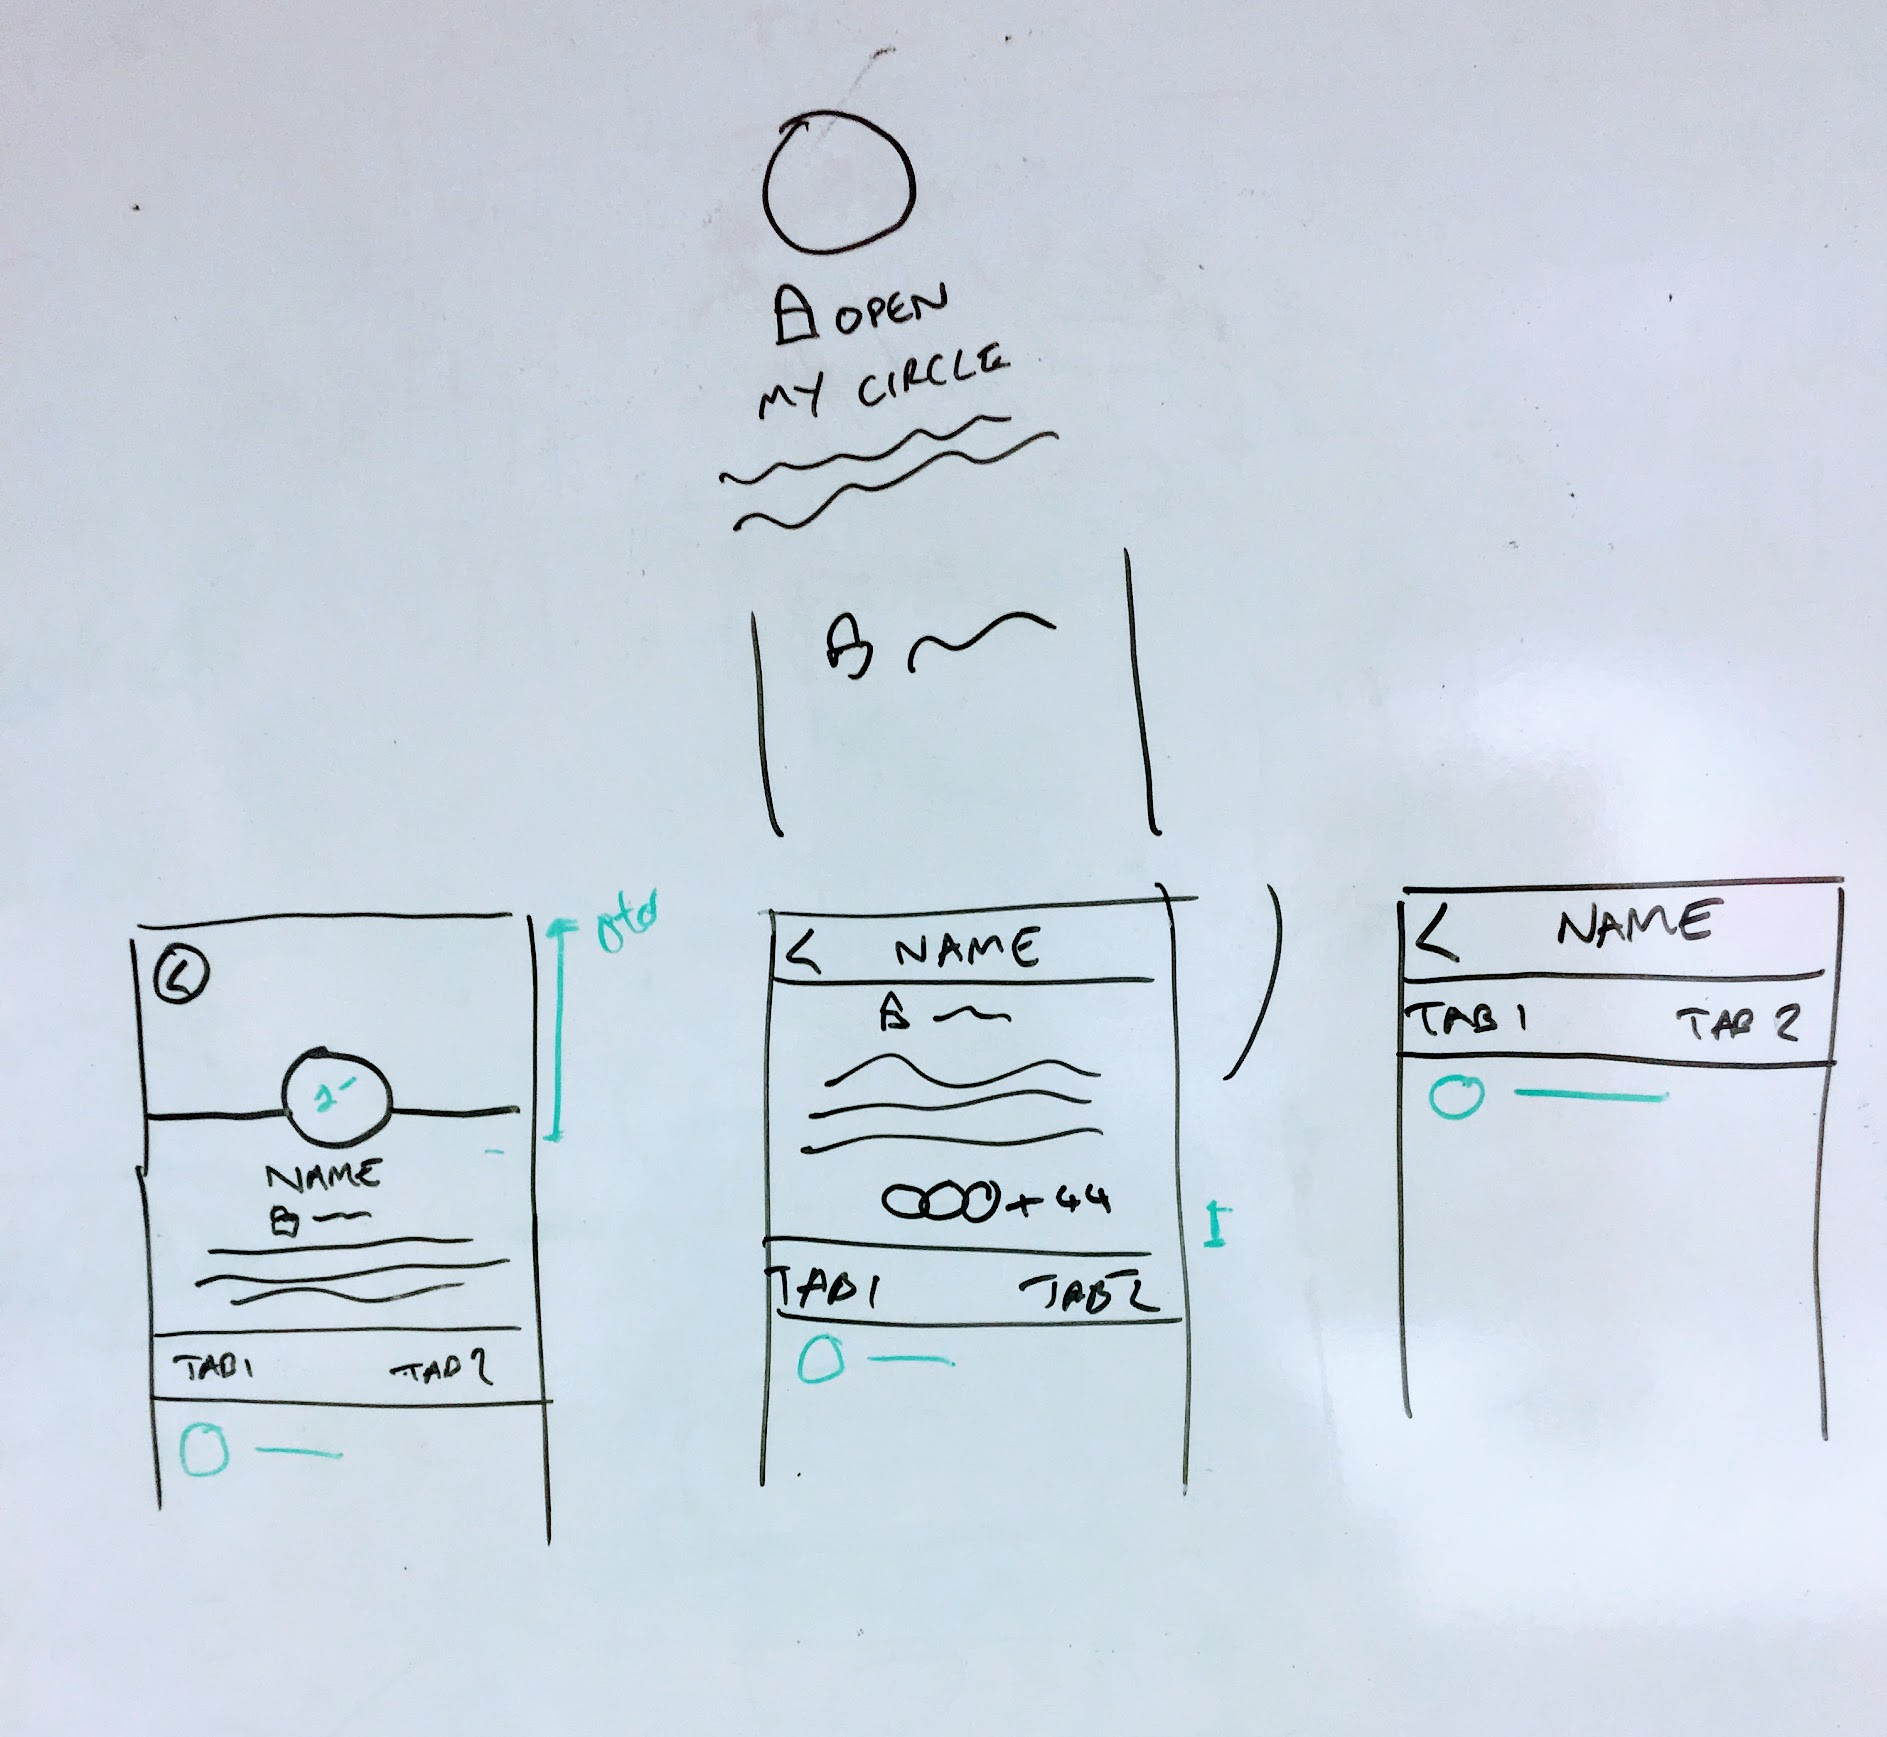 Animation/Interaction - I worked closely with the iOS engineer to demonstrate how content would react when scrolling down on a circle detail page, staying lean by simply sketching the examples on a whiteboard and talking through the challenges. This was important to get right as I wanted to re-use this paradigm in further sections of the app to maintain consistency.